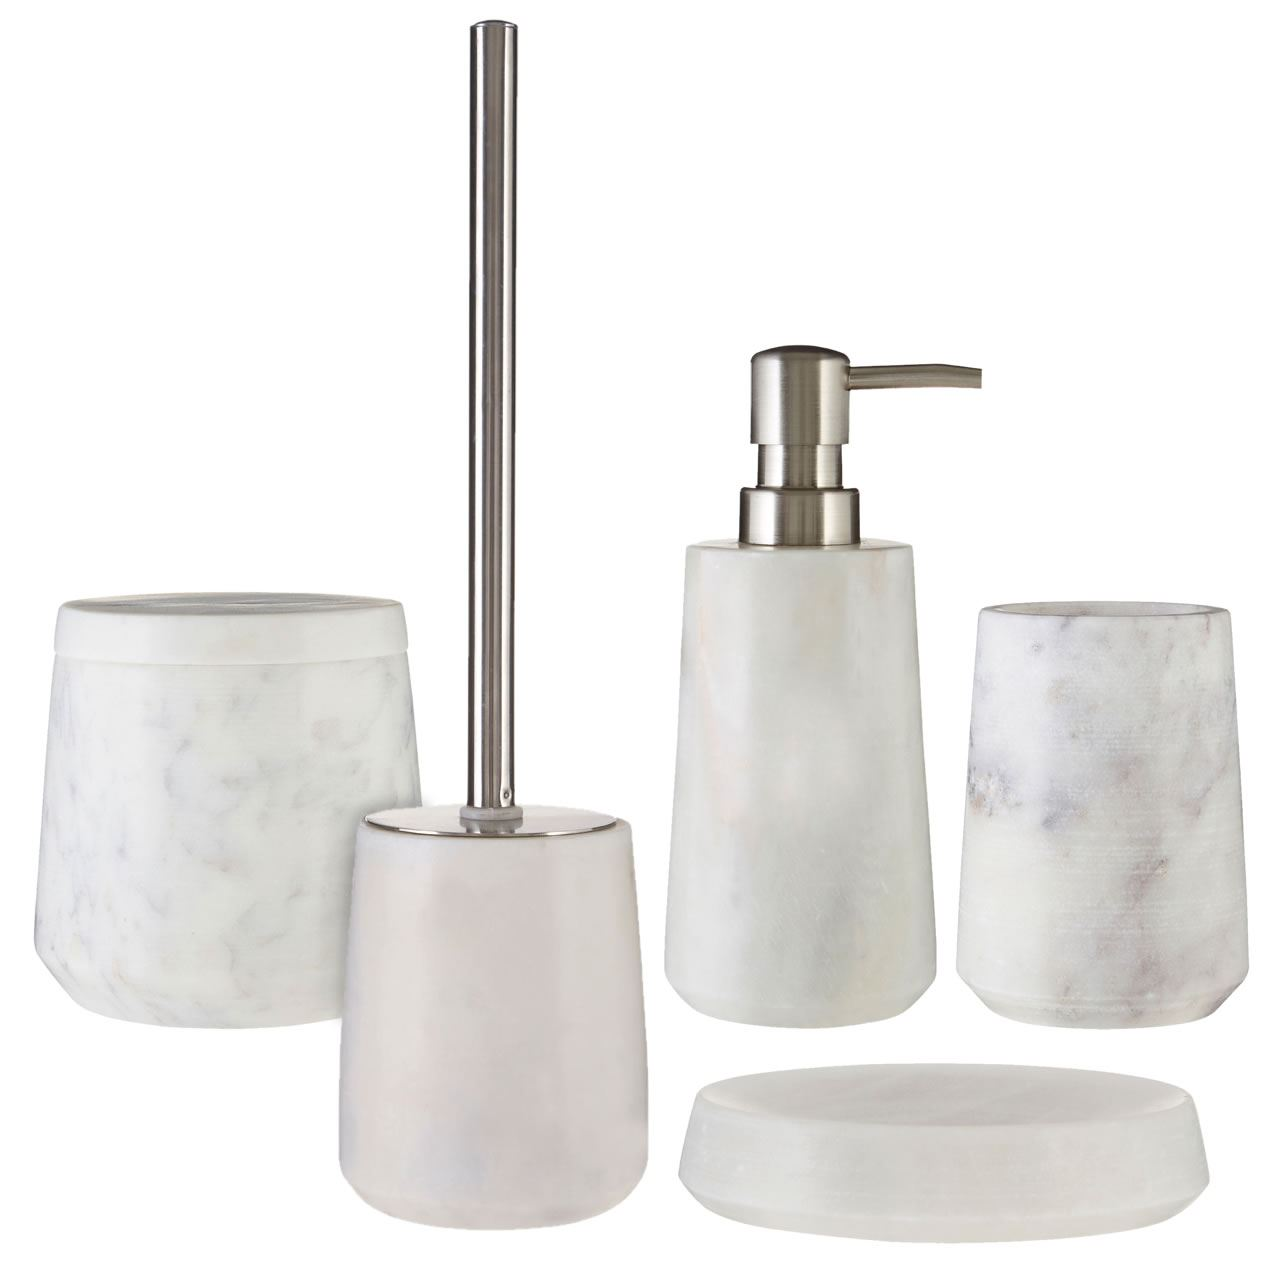 5 piece marble bathroom accessories set soap dish tumbler for Washroom set